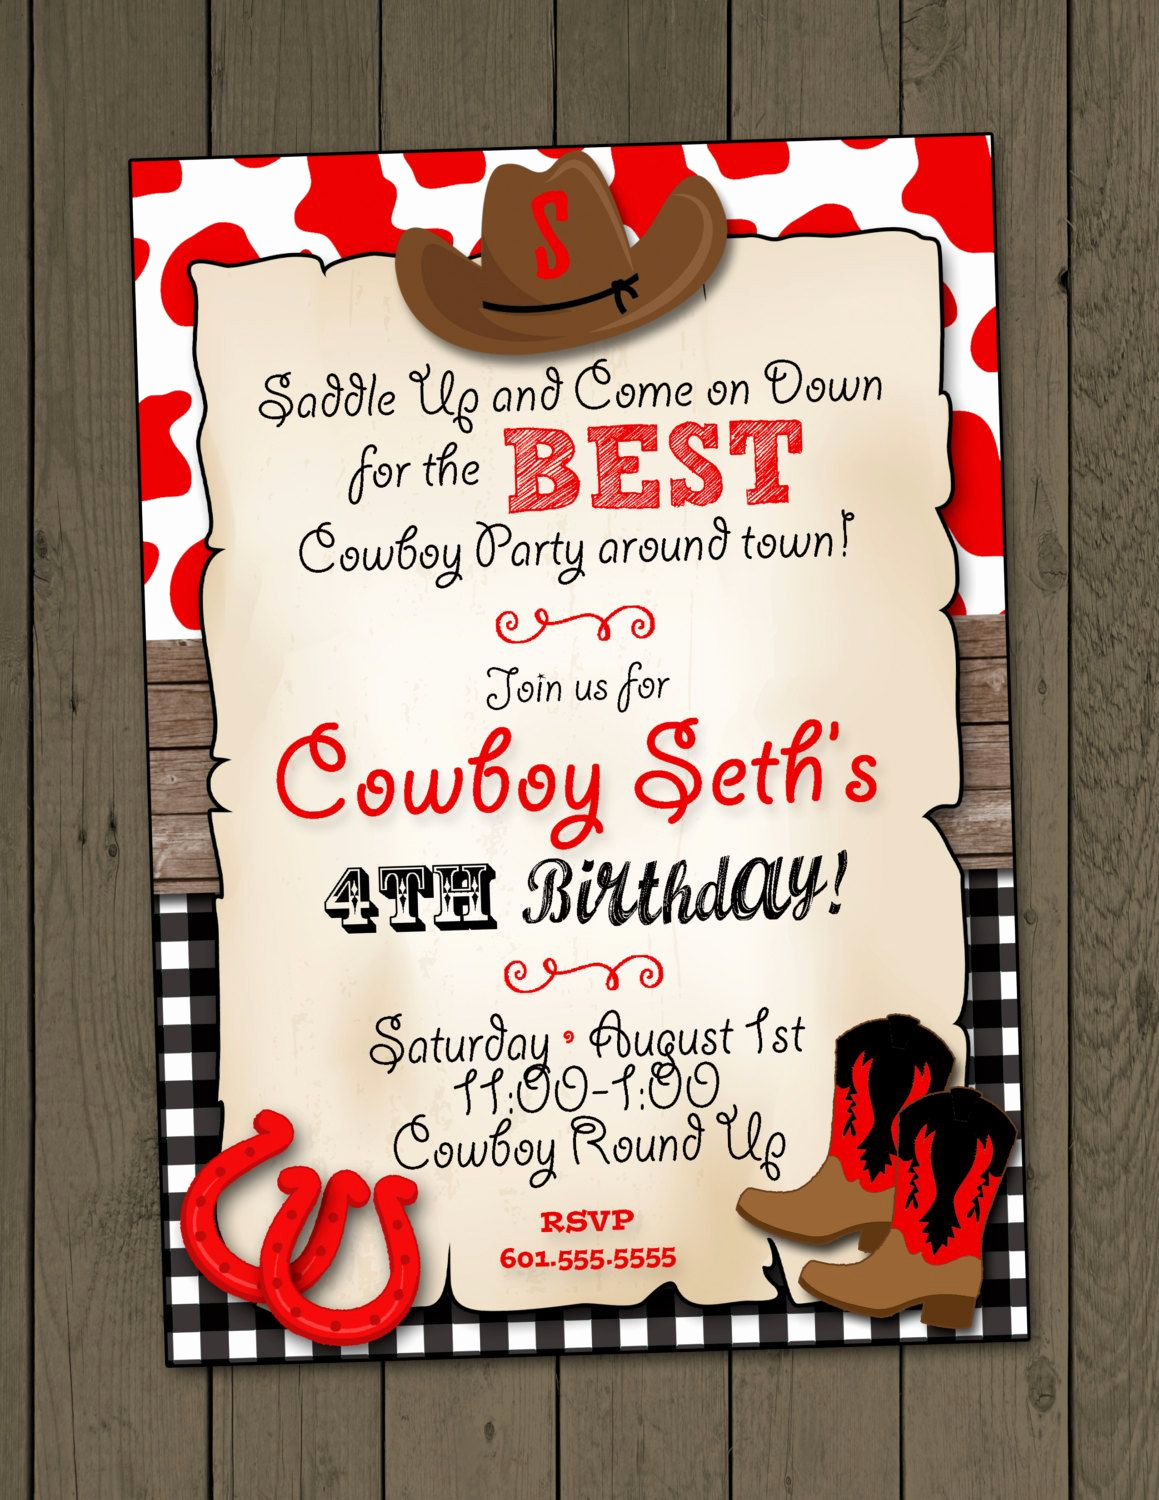 Western themed Invitation Templates Lovely Cowboy Birthday Party Invitation Cowboy Invitation Digital